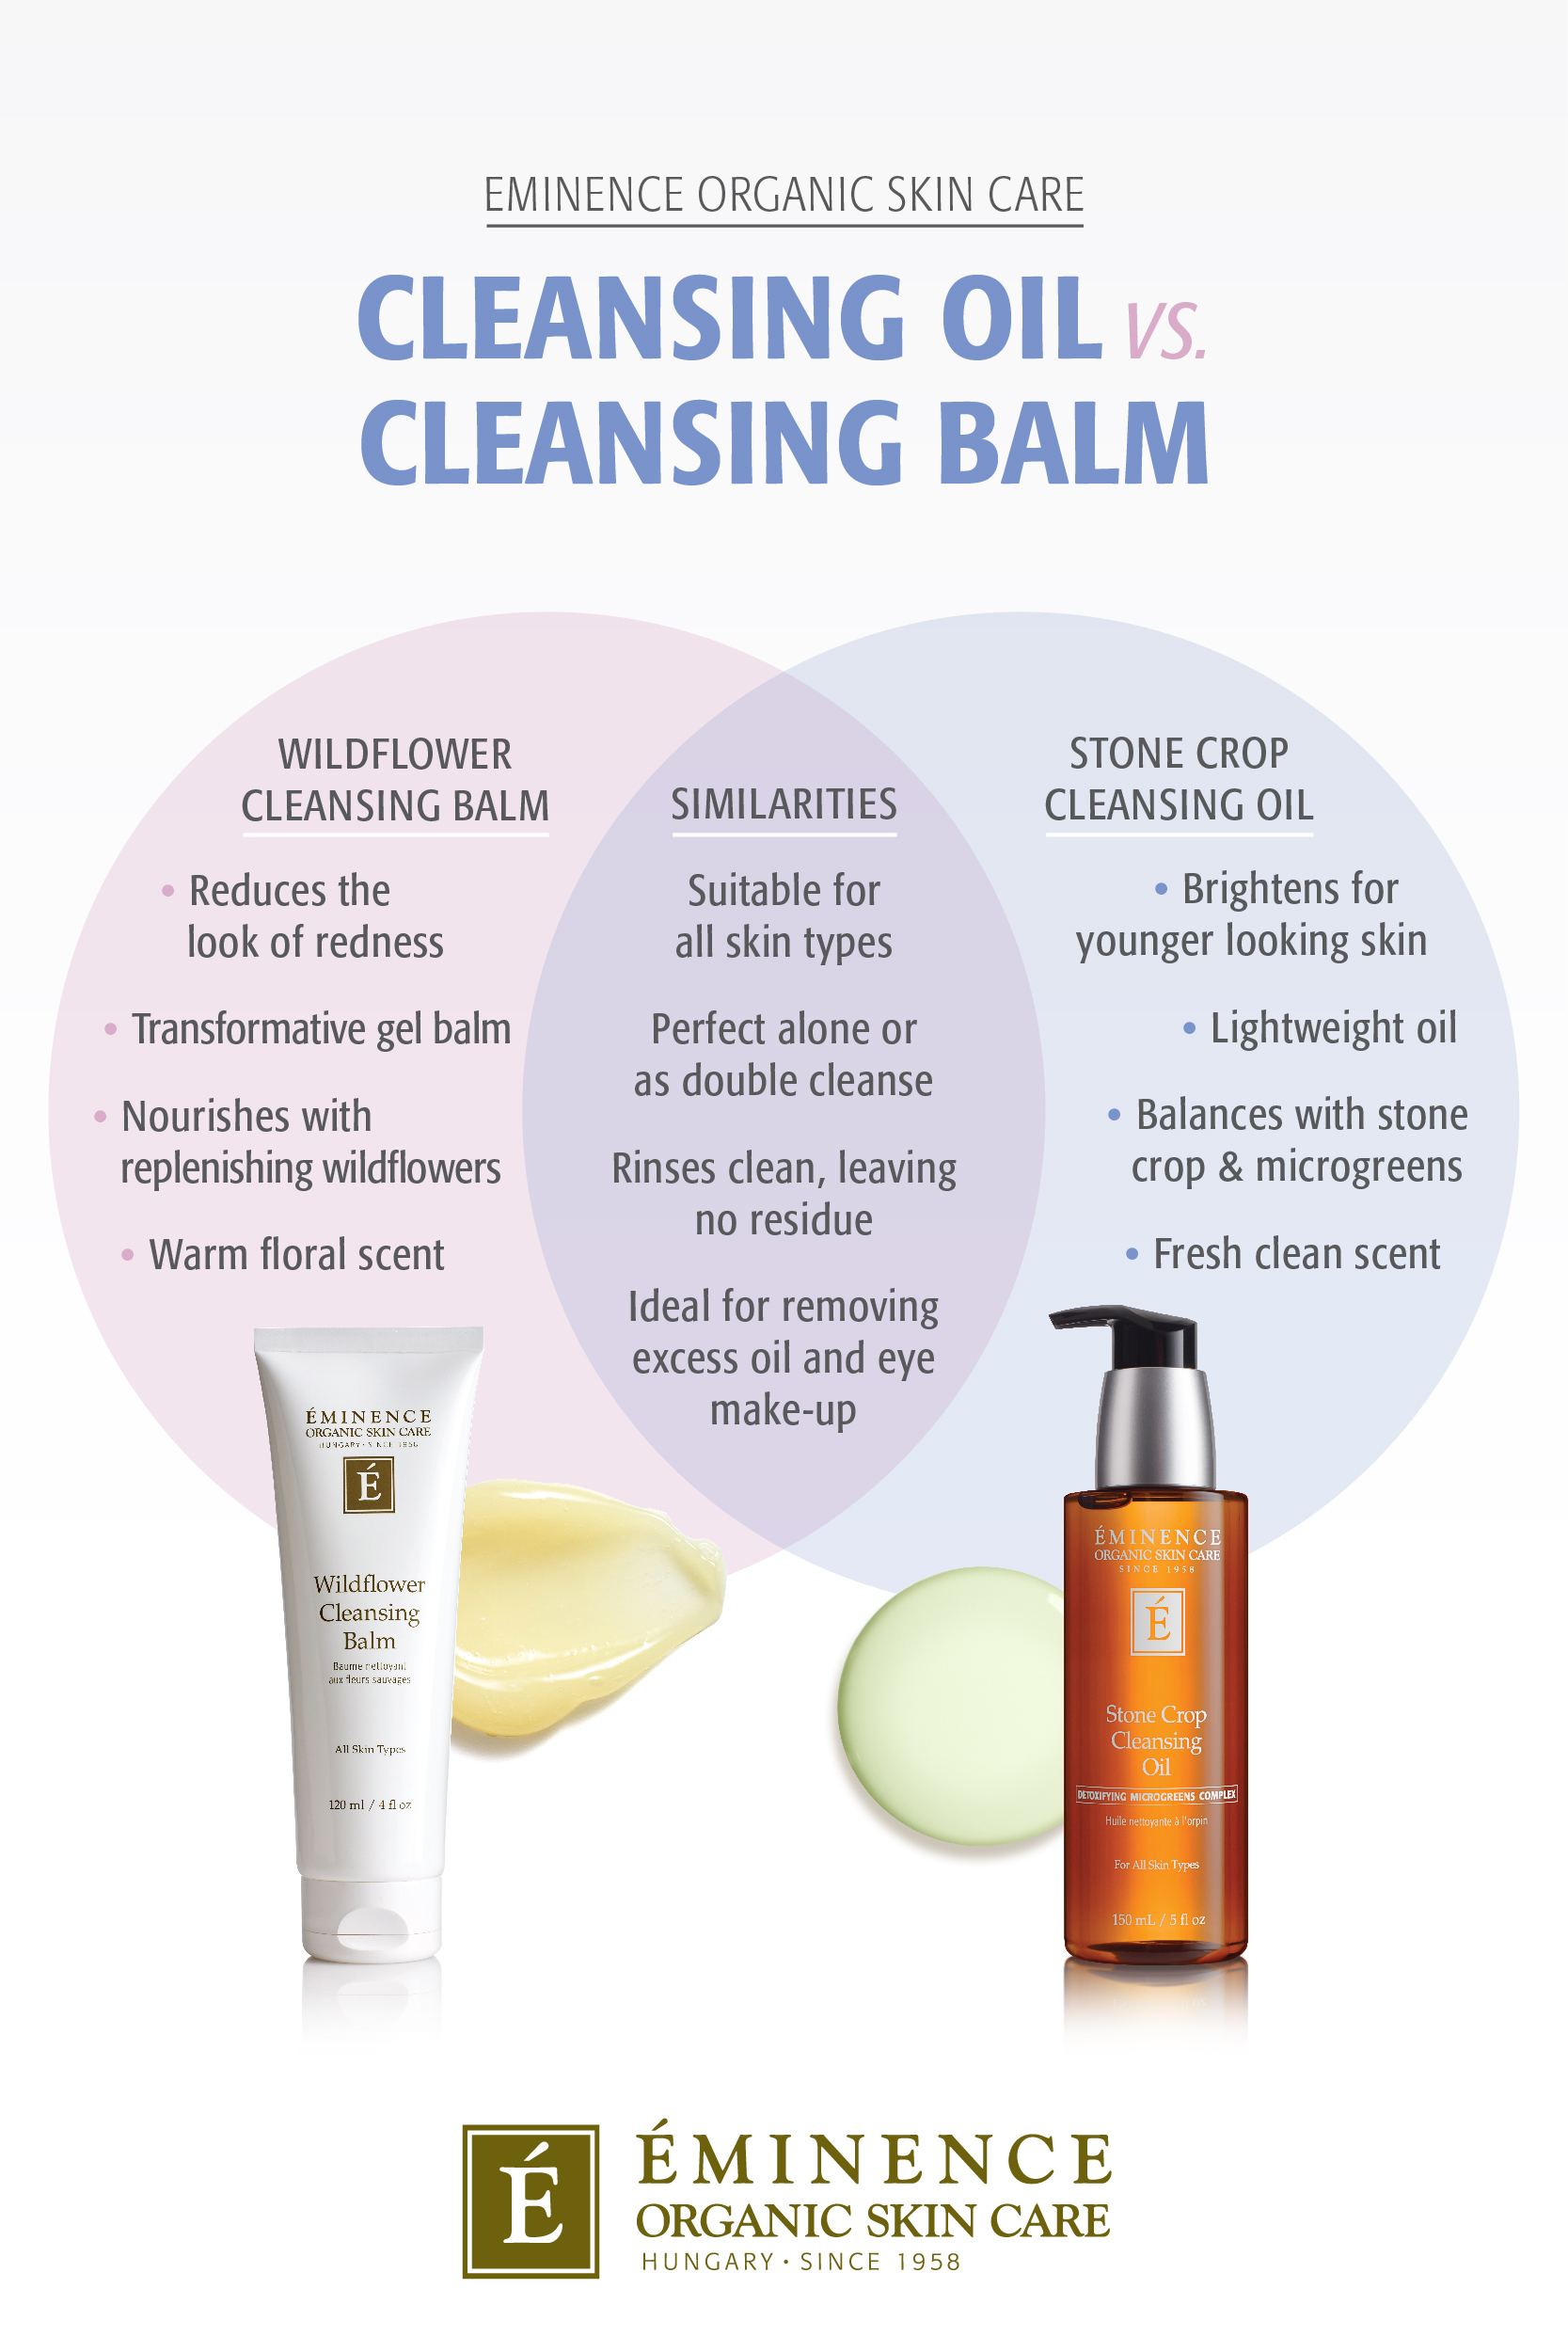 Eminence Organics Wildflower Cleansing Balm versus Stone Crop Cleansing OIl